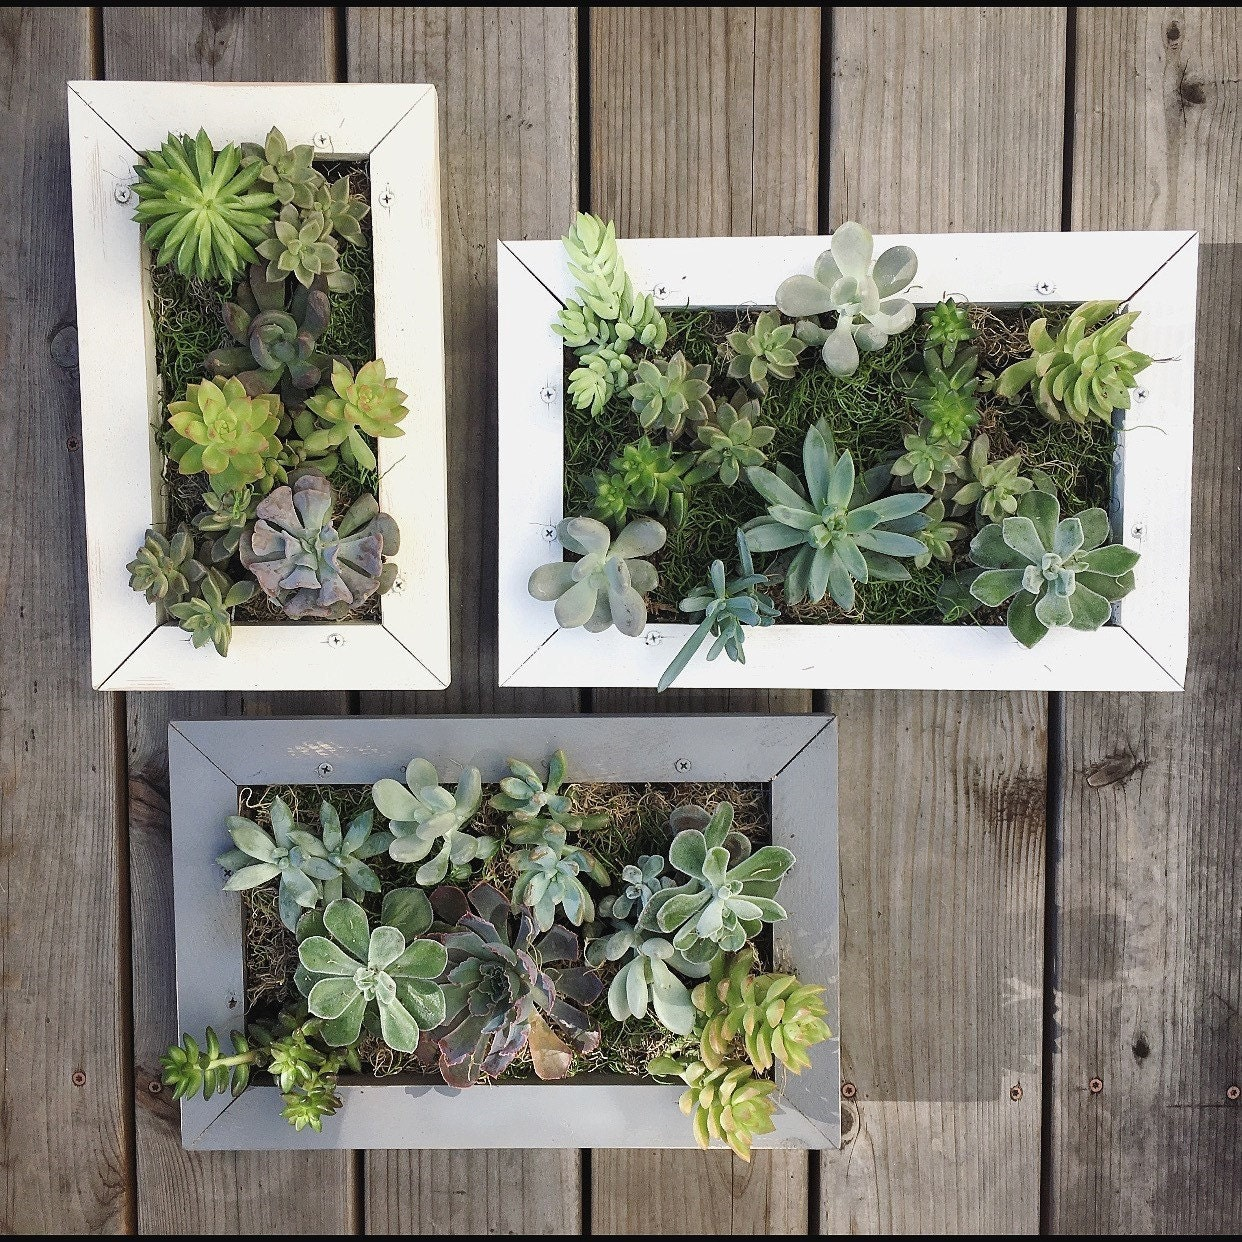 Succulent wall planter hanging living wall picture frame for Indoor succulent wall